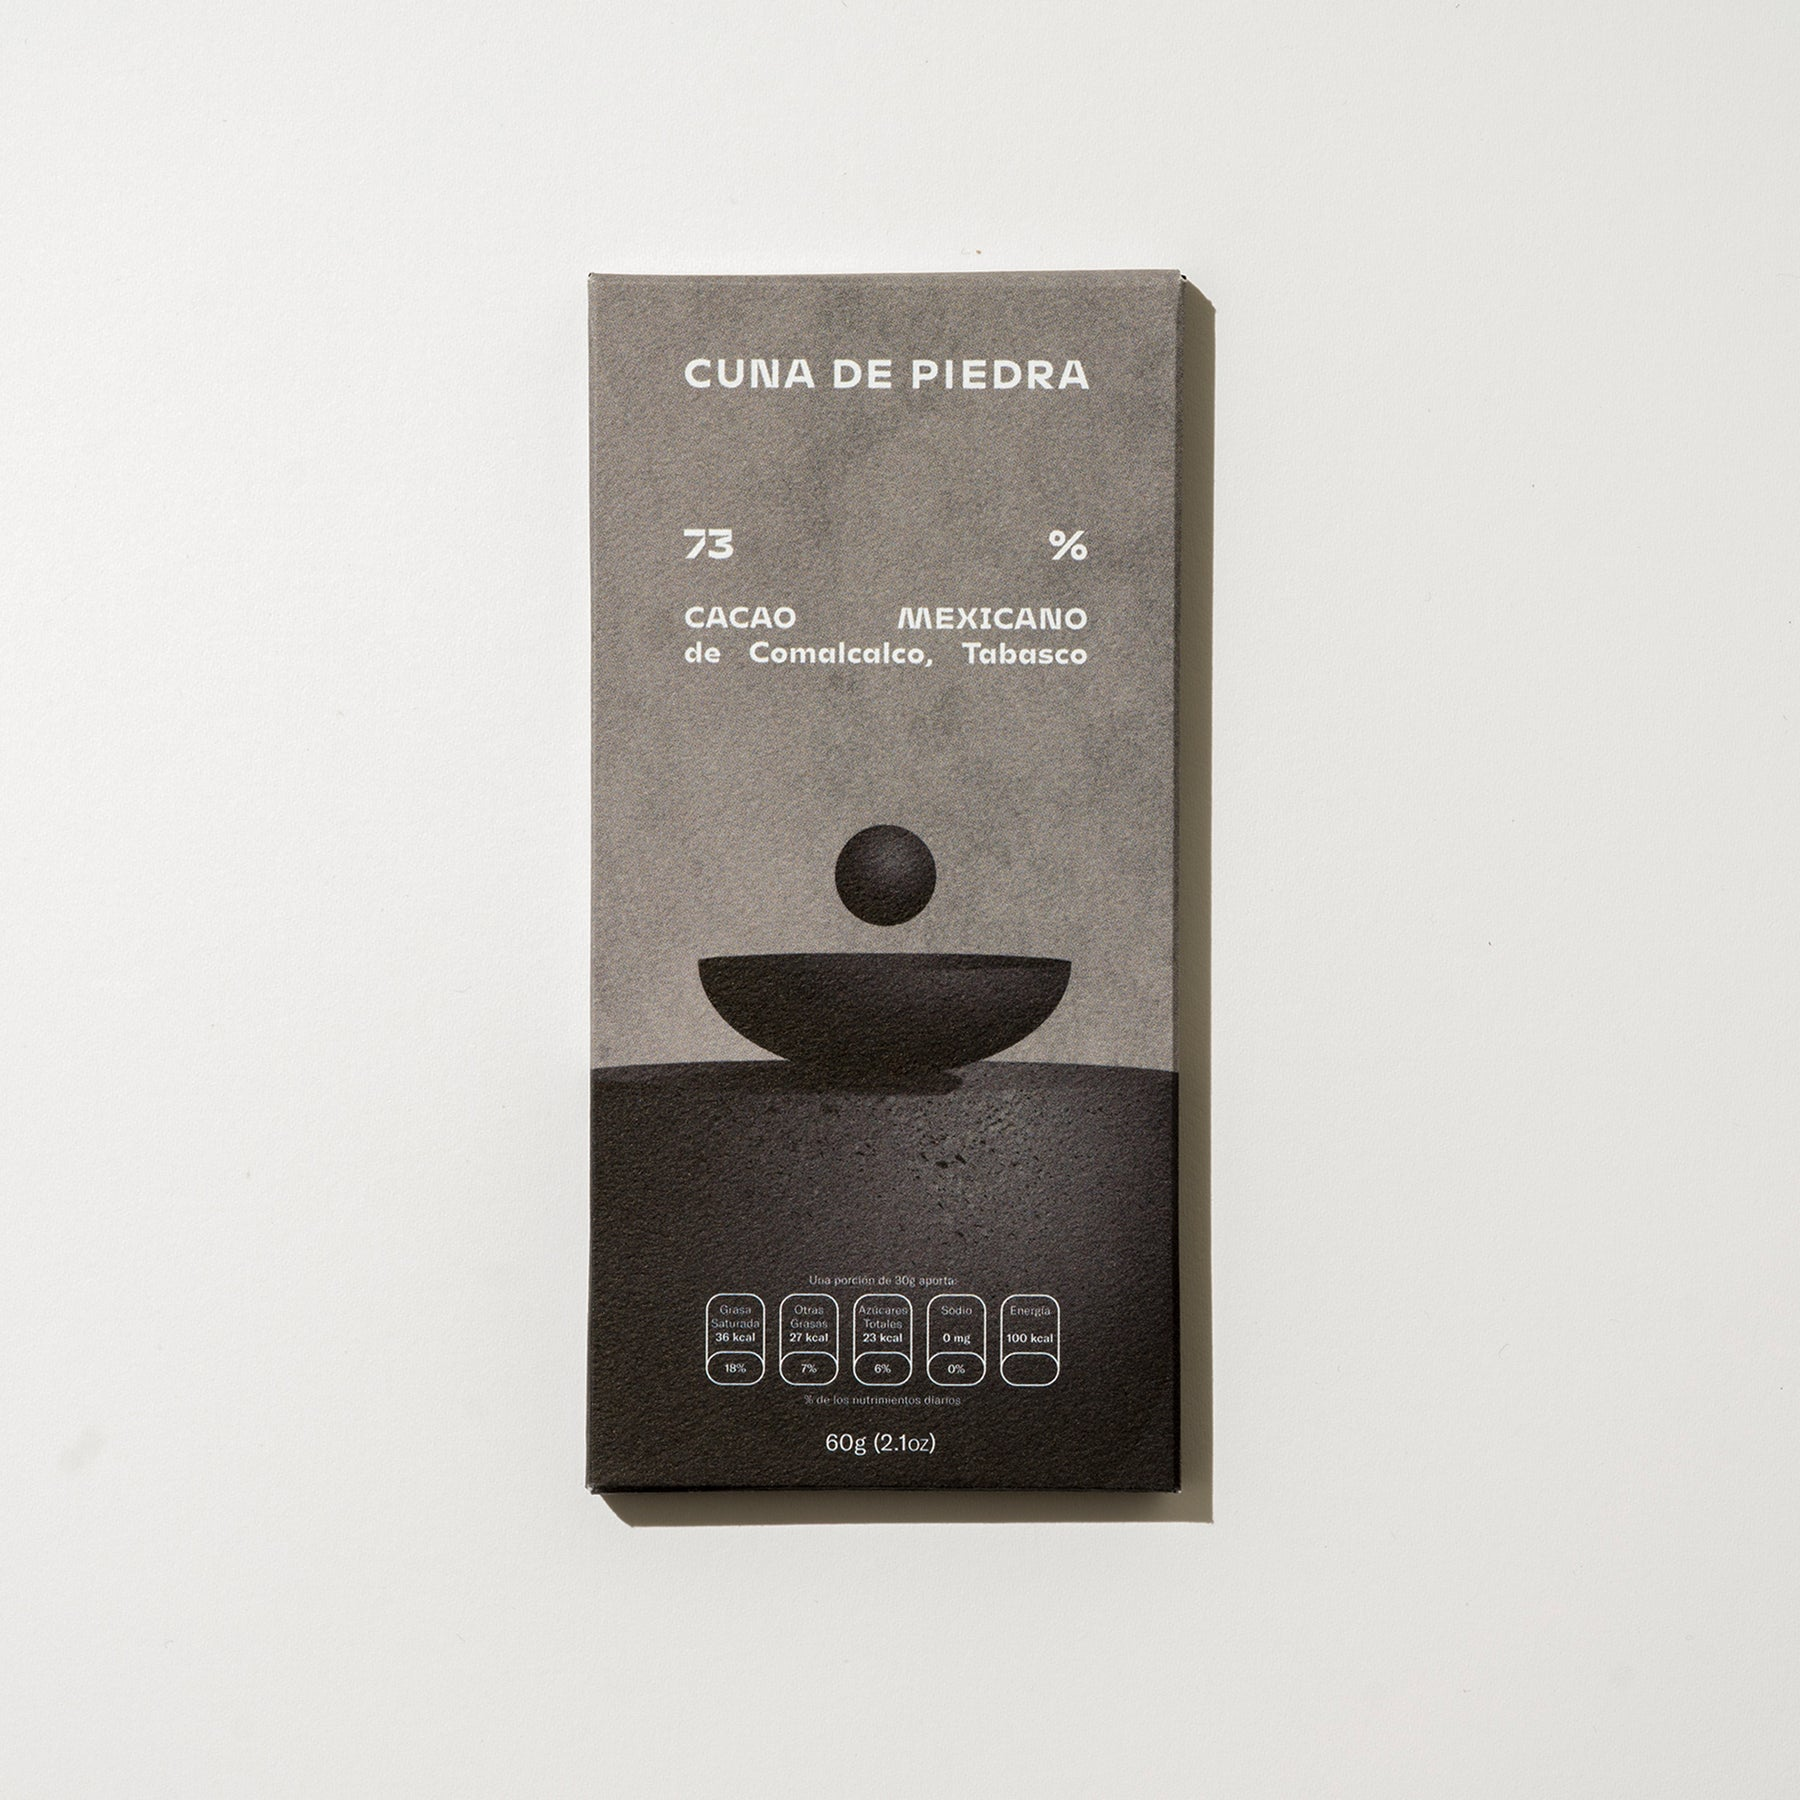 73% MEXICAN CACAO from Comalcalco, Tabasco